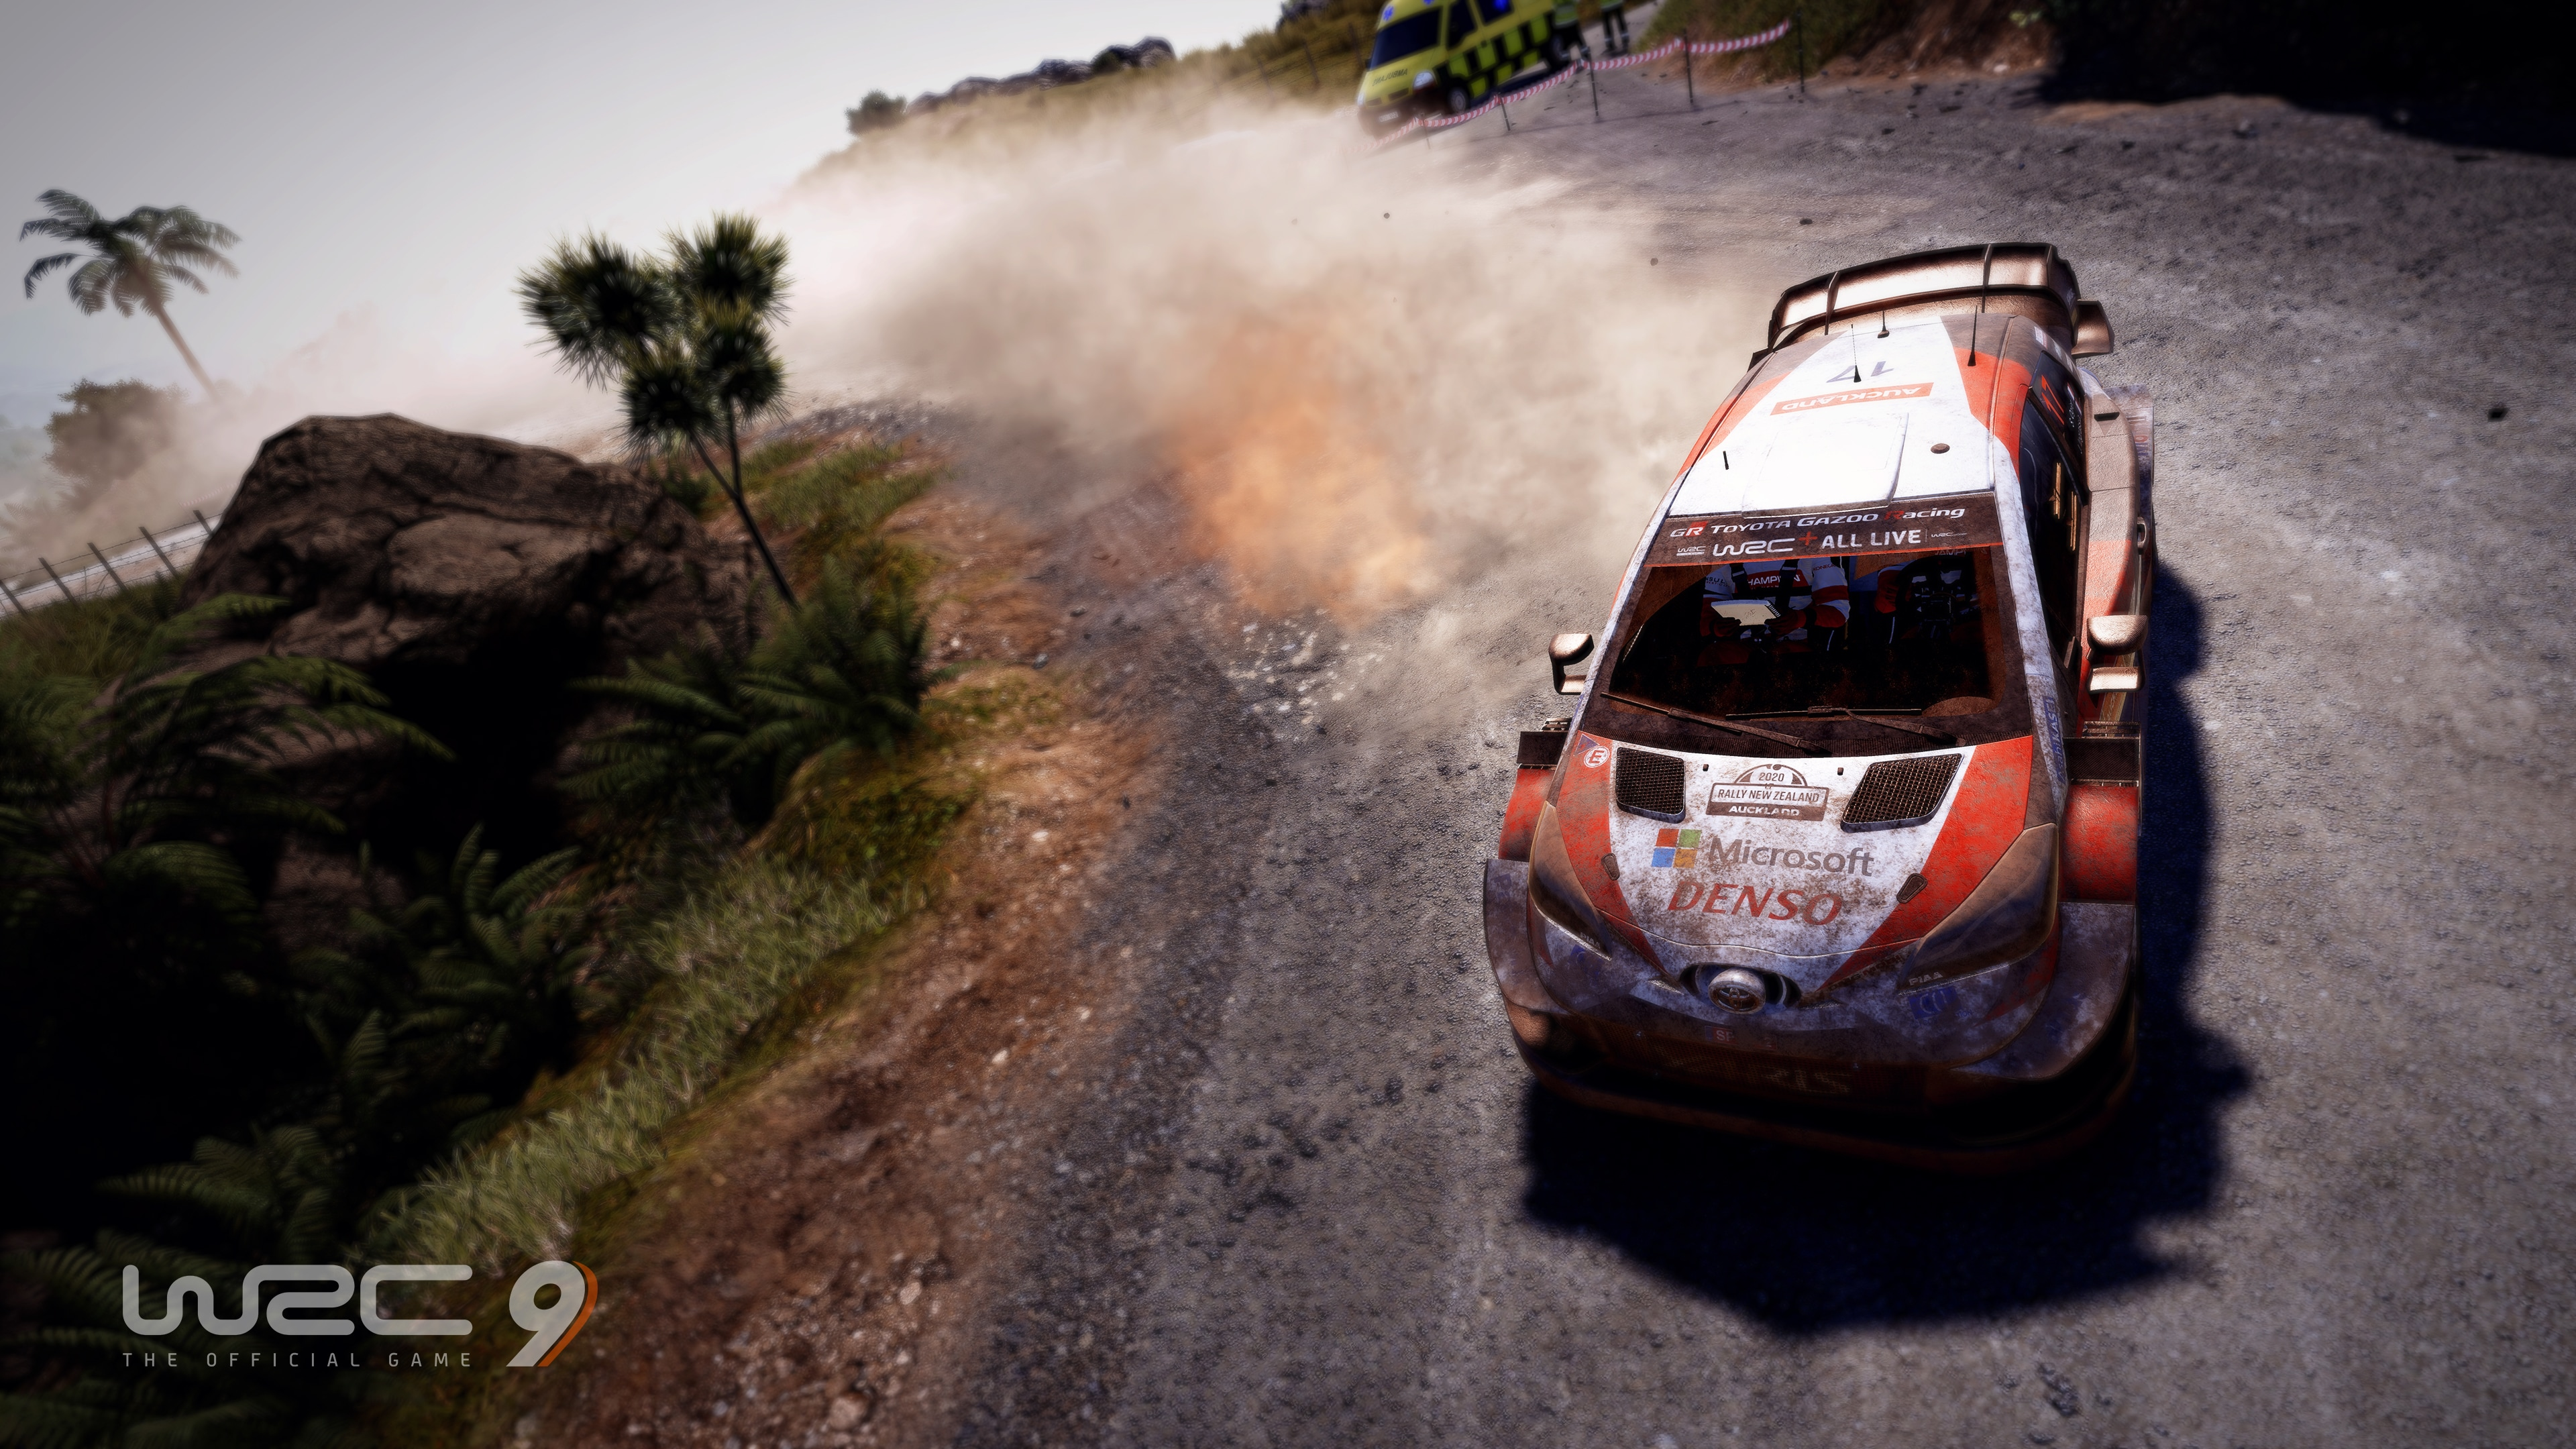 WRC9_Screenshots_1_New_Zealand_Toyota_3_4K